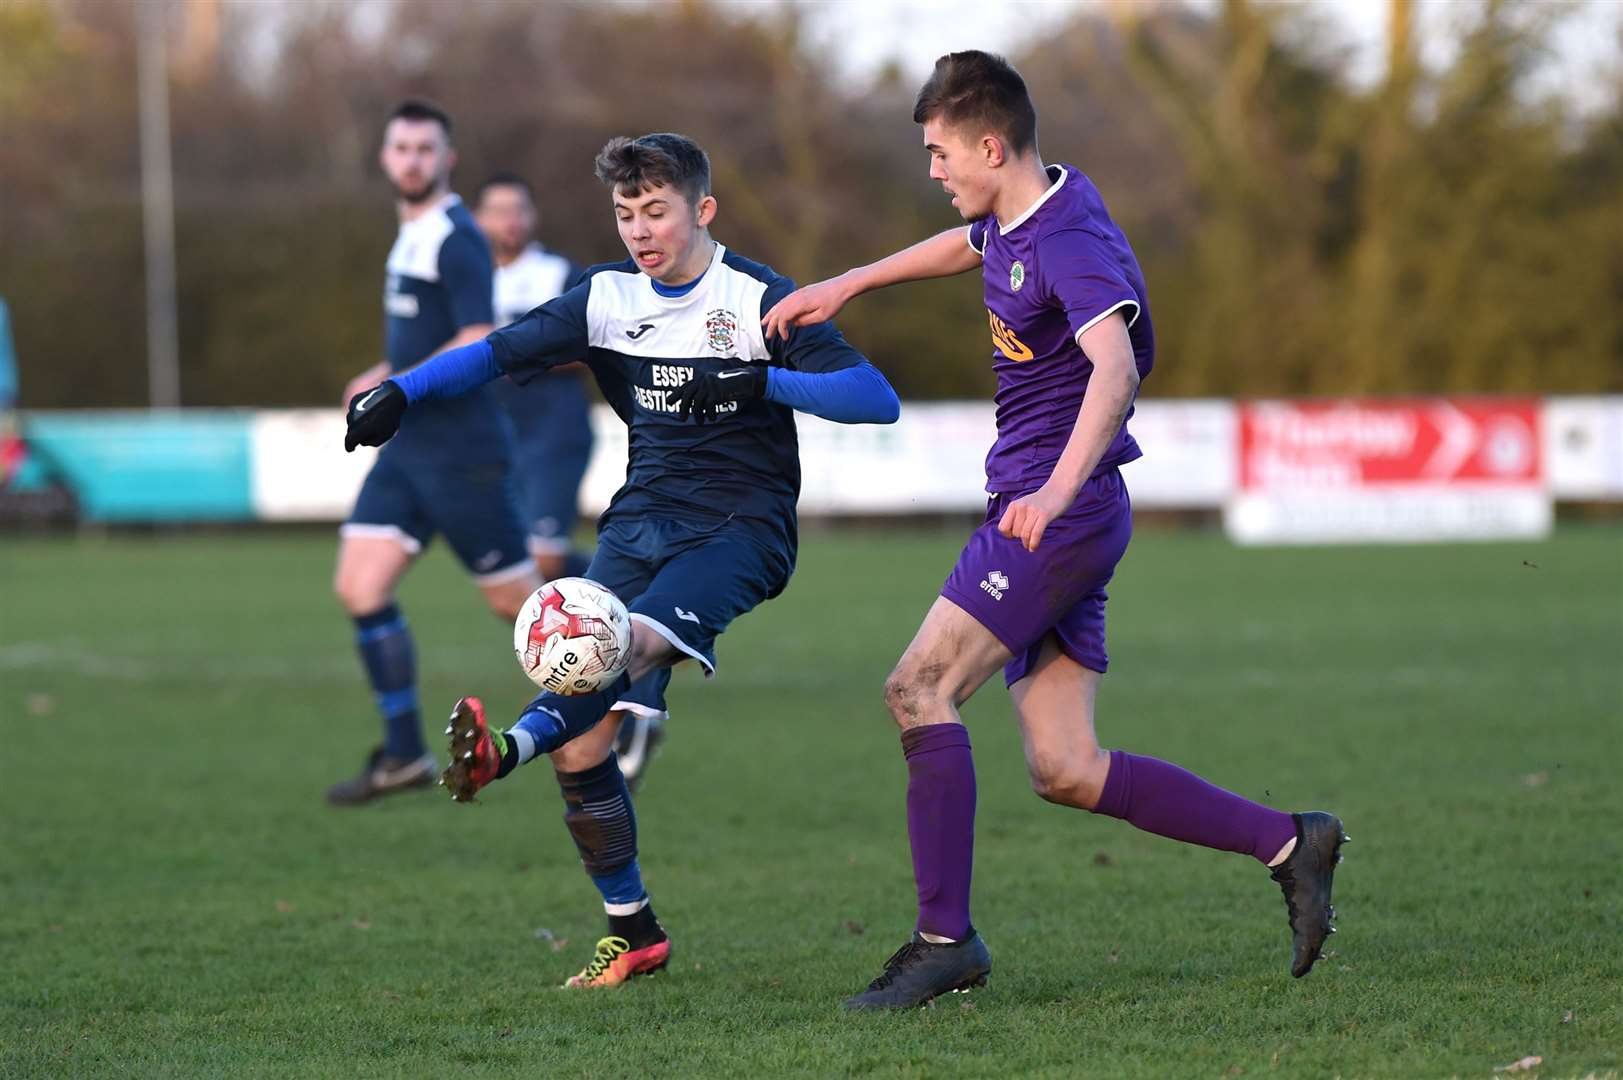 FOOTBALL - Walsham le Willows v Hadleigh Town...Pictured: Mason Ransome (H) and Jack Spampanato (W).....PICTURE: Mecha Morton .... (28180533)